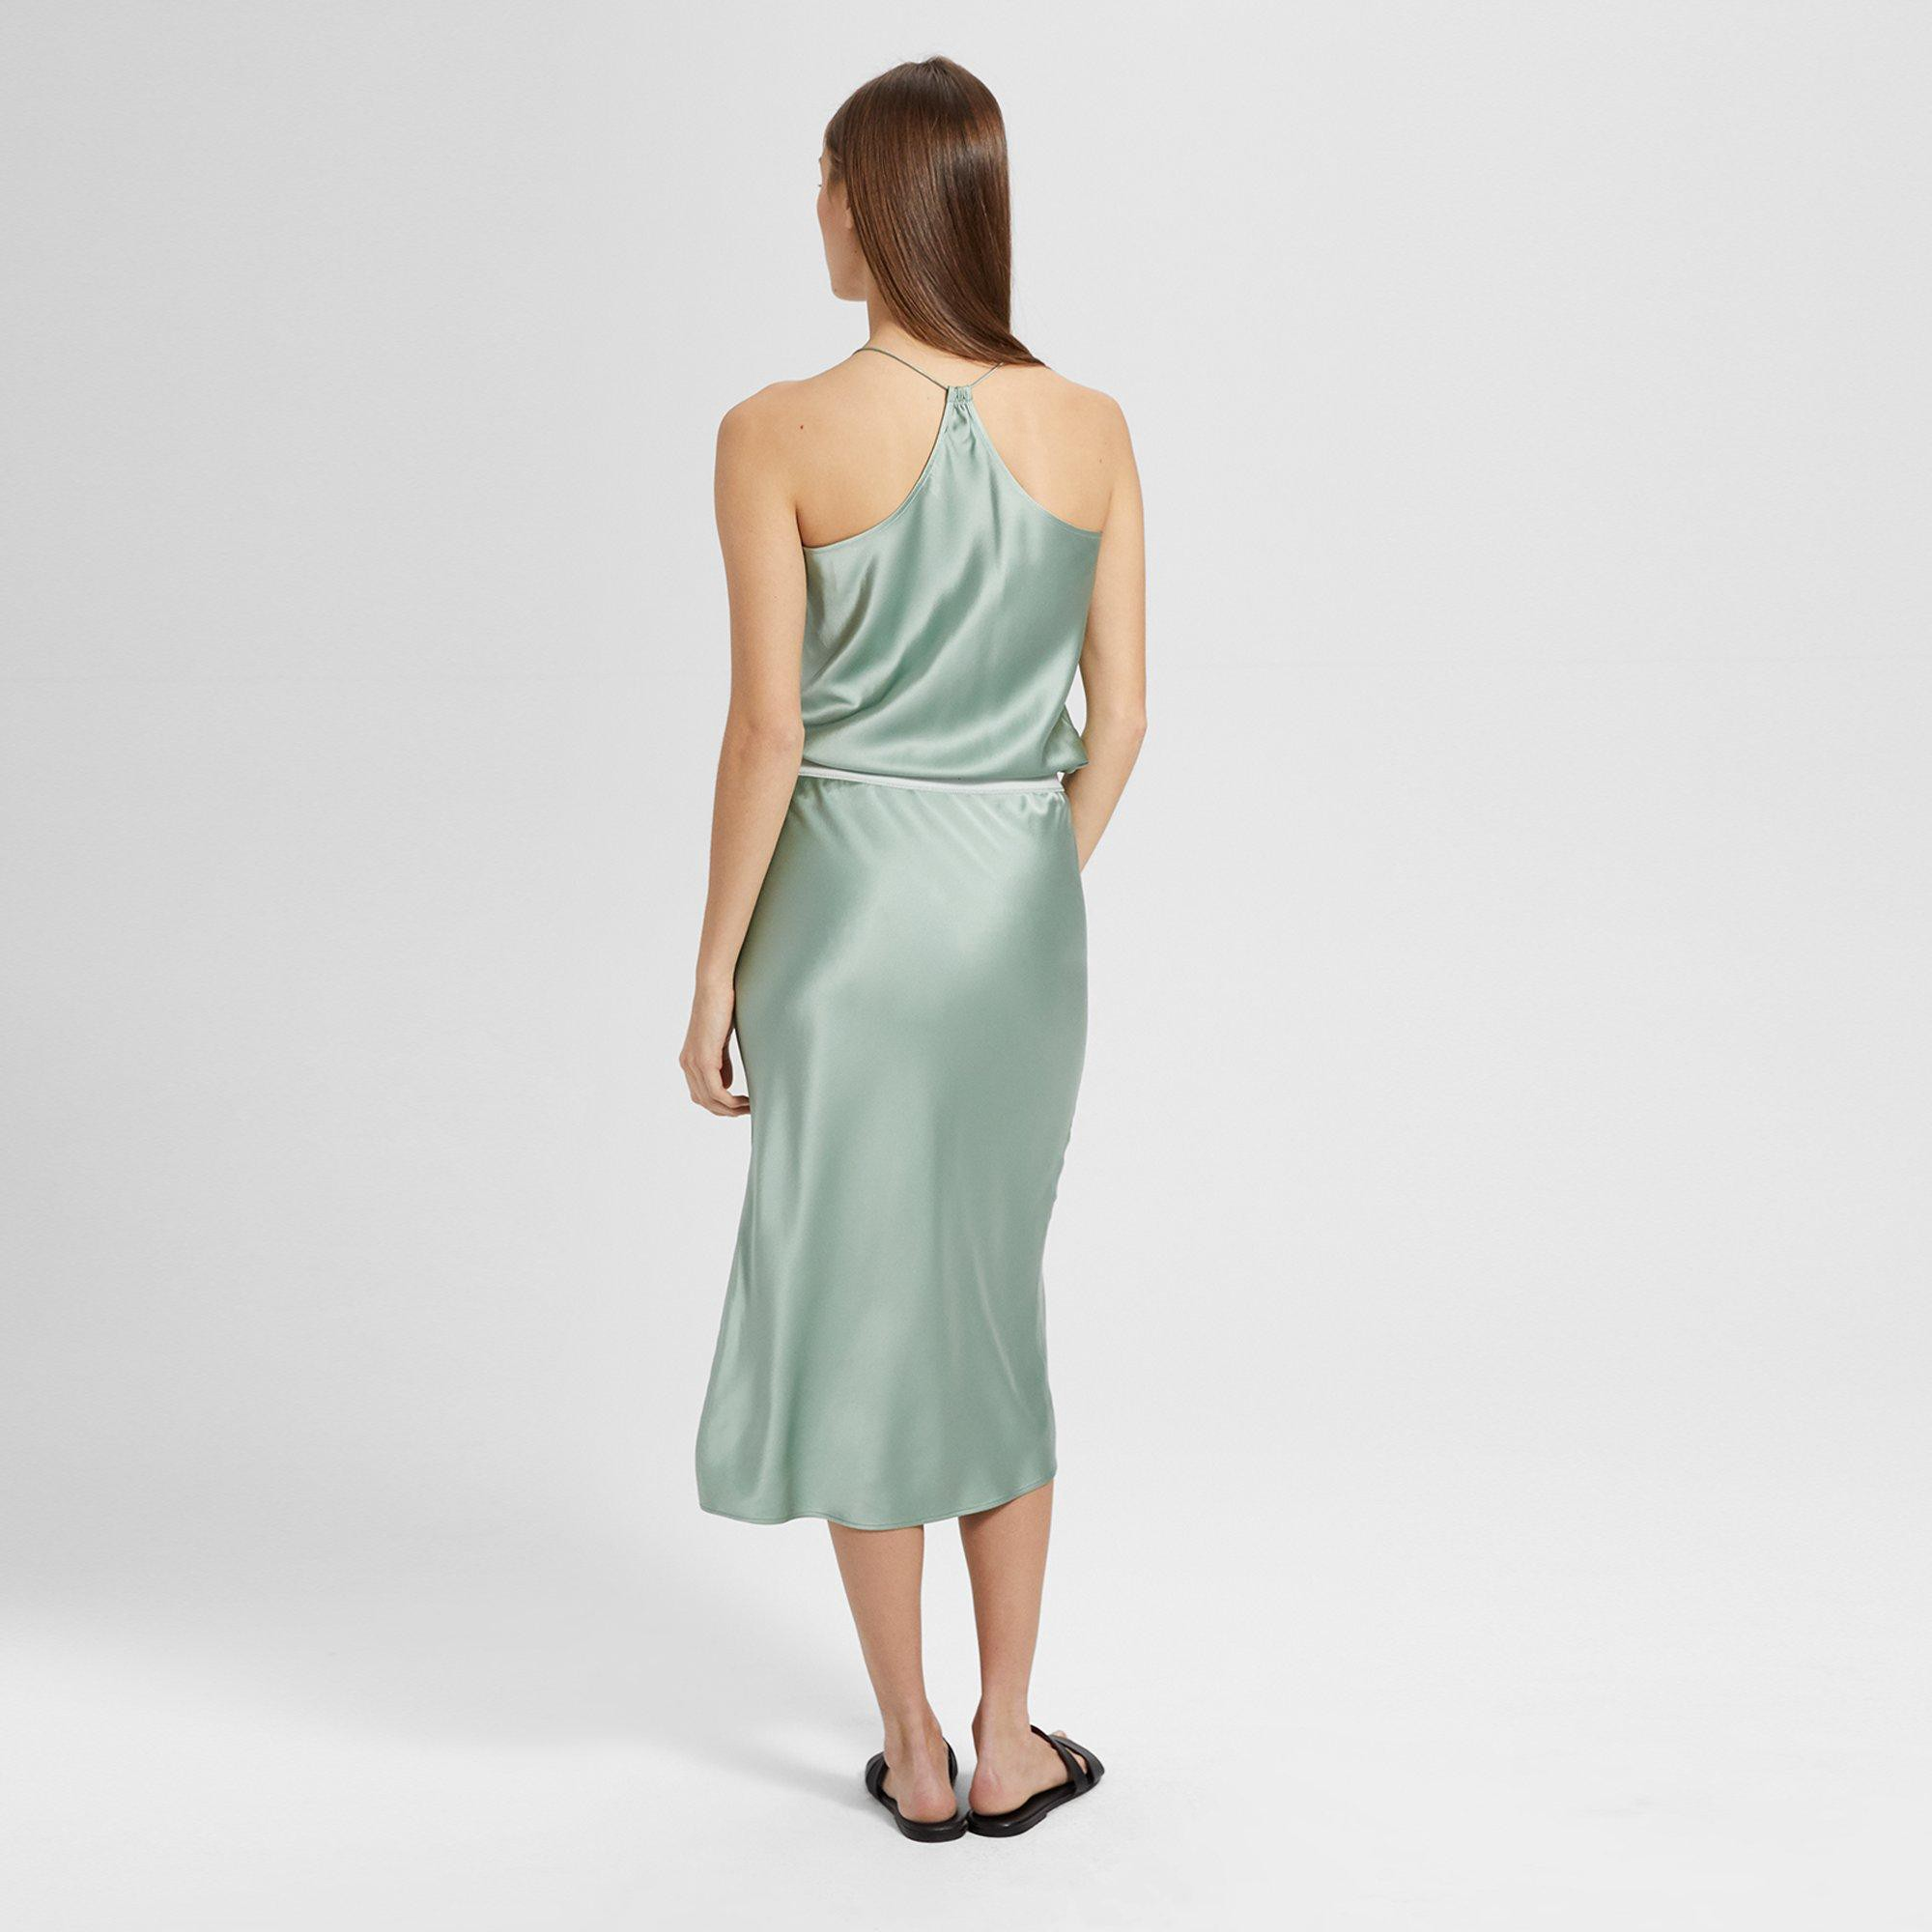 d657a6609d9 Theory Silk Satin Pull-On Slip Skirt - Light Moss P | Products ...